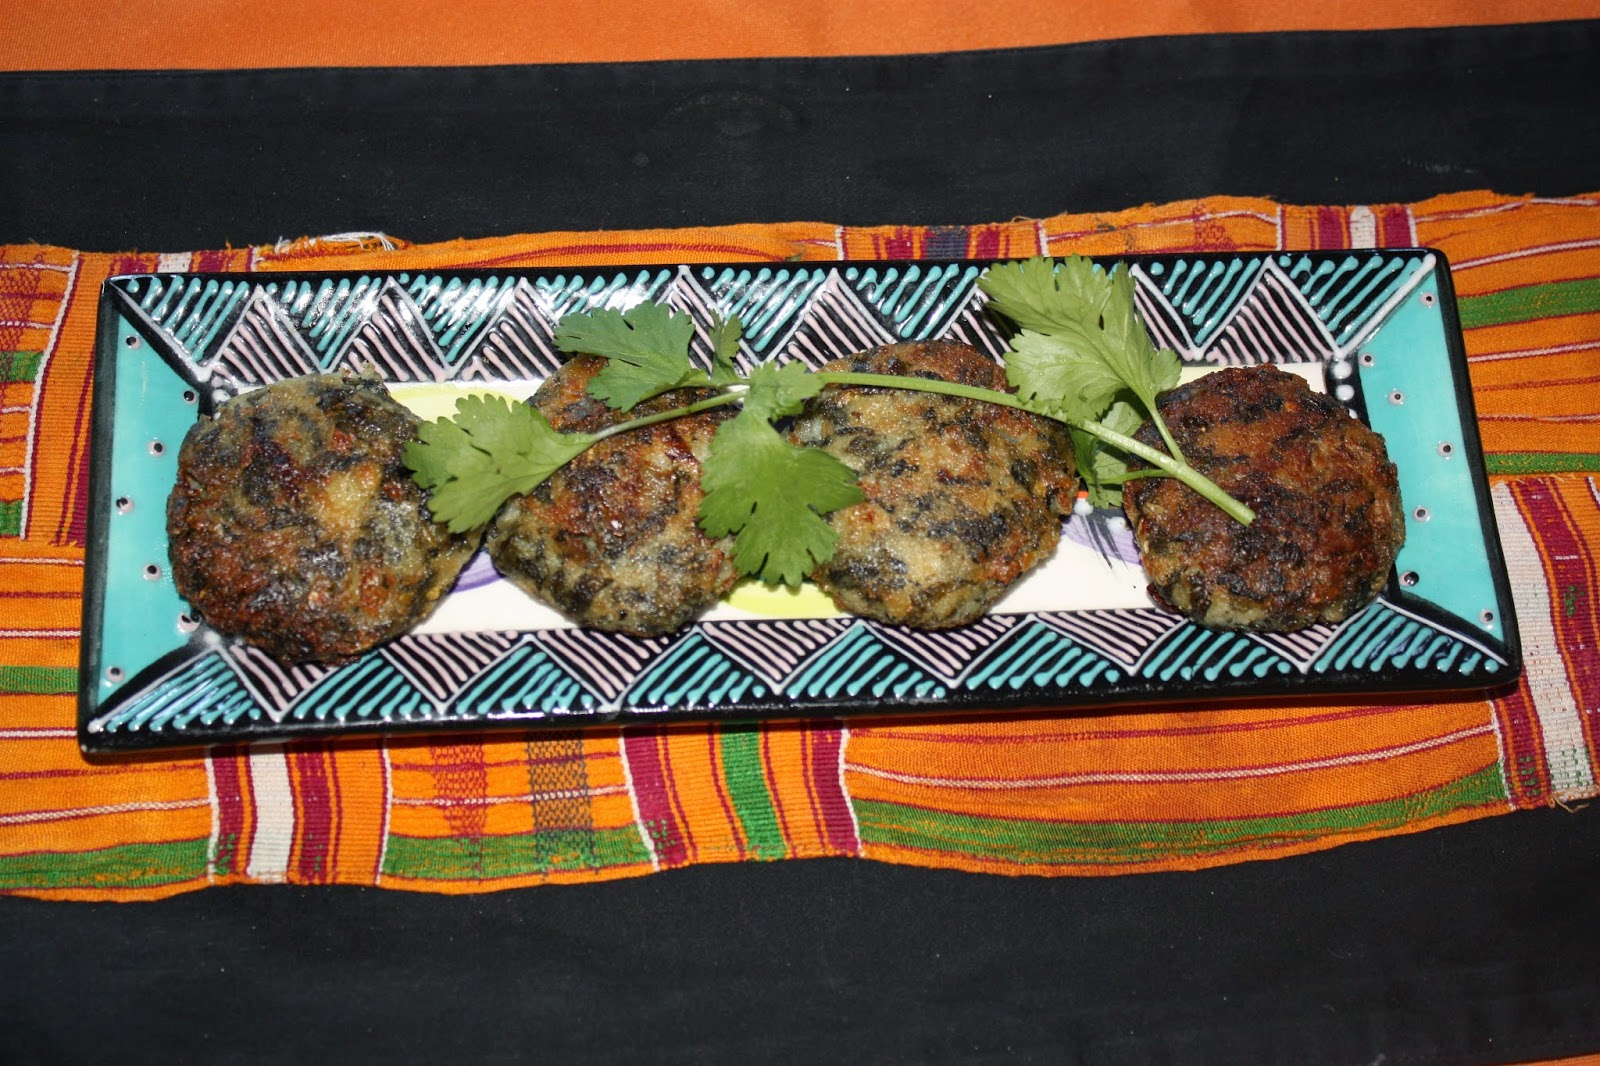 Xhosa imfino wild spinach patty recipe edible gold gold our recipe is quick and inexpensive and can be served as a snack starter or as an accompaniment to a main dish forumfinder Images